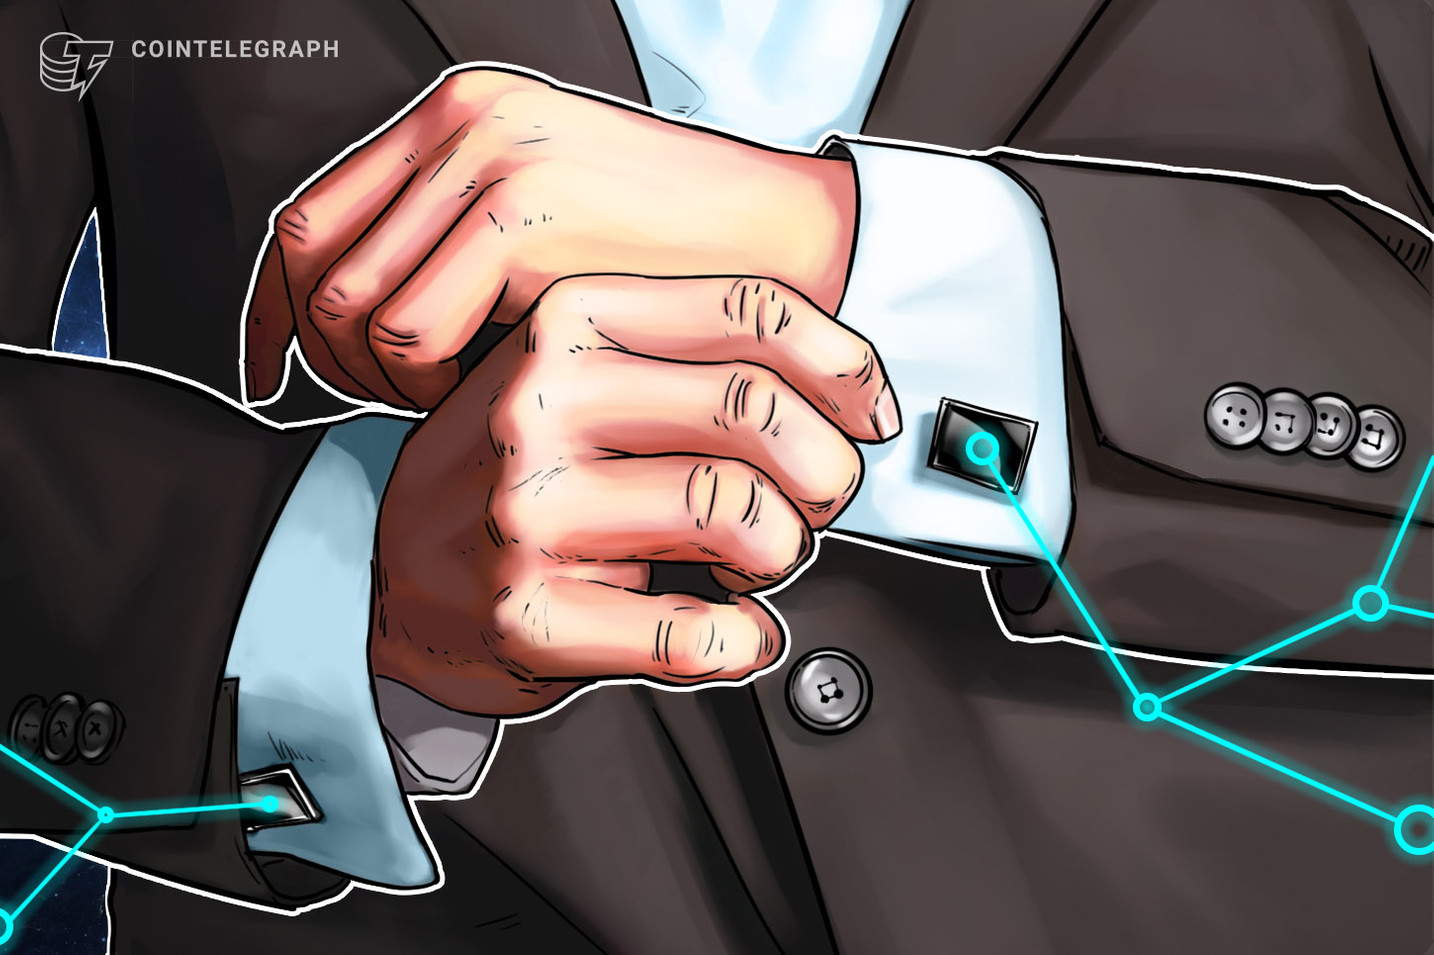 JPMorgan Chase Senior Executive Becomes CEO of Blockchain Precious Metals Firm